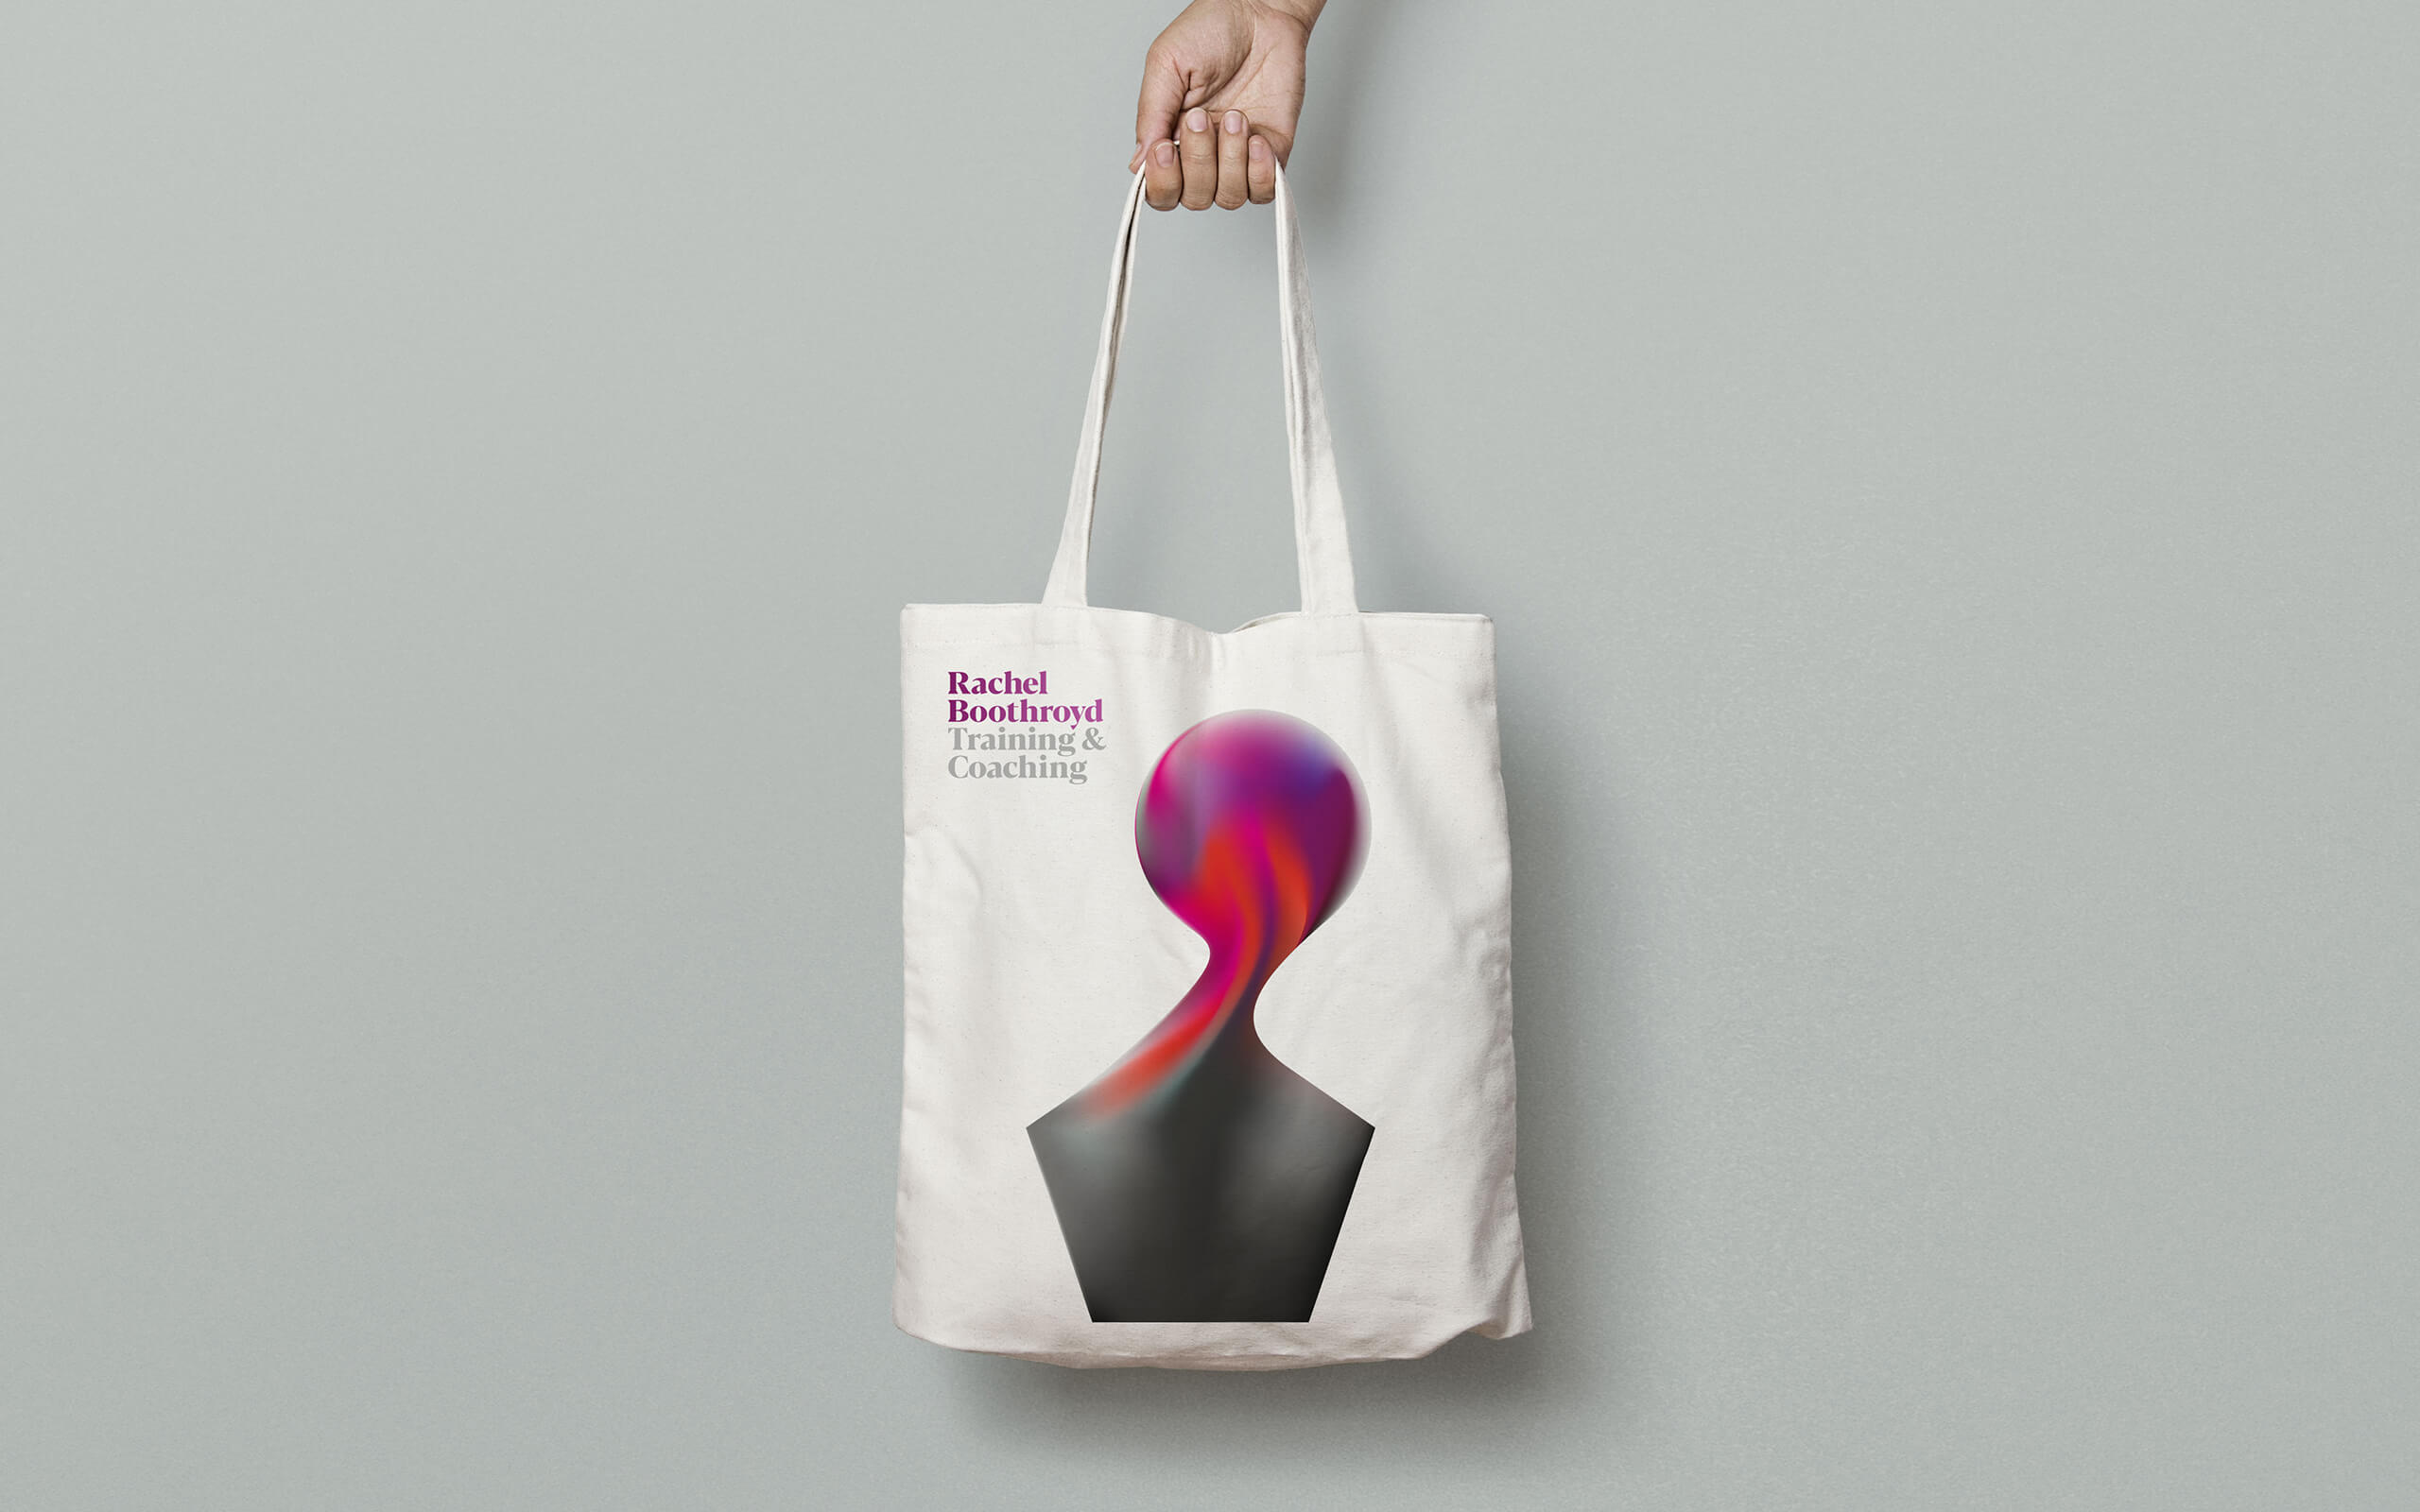 Rachel Boothroyd Training and Coaching tote bag